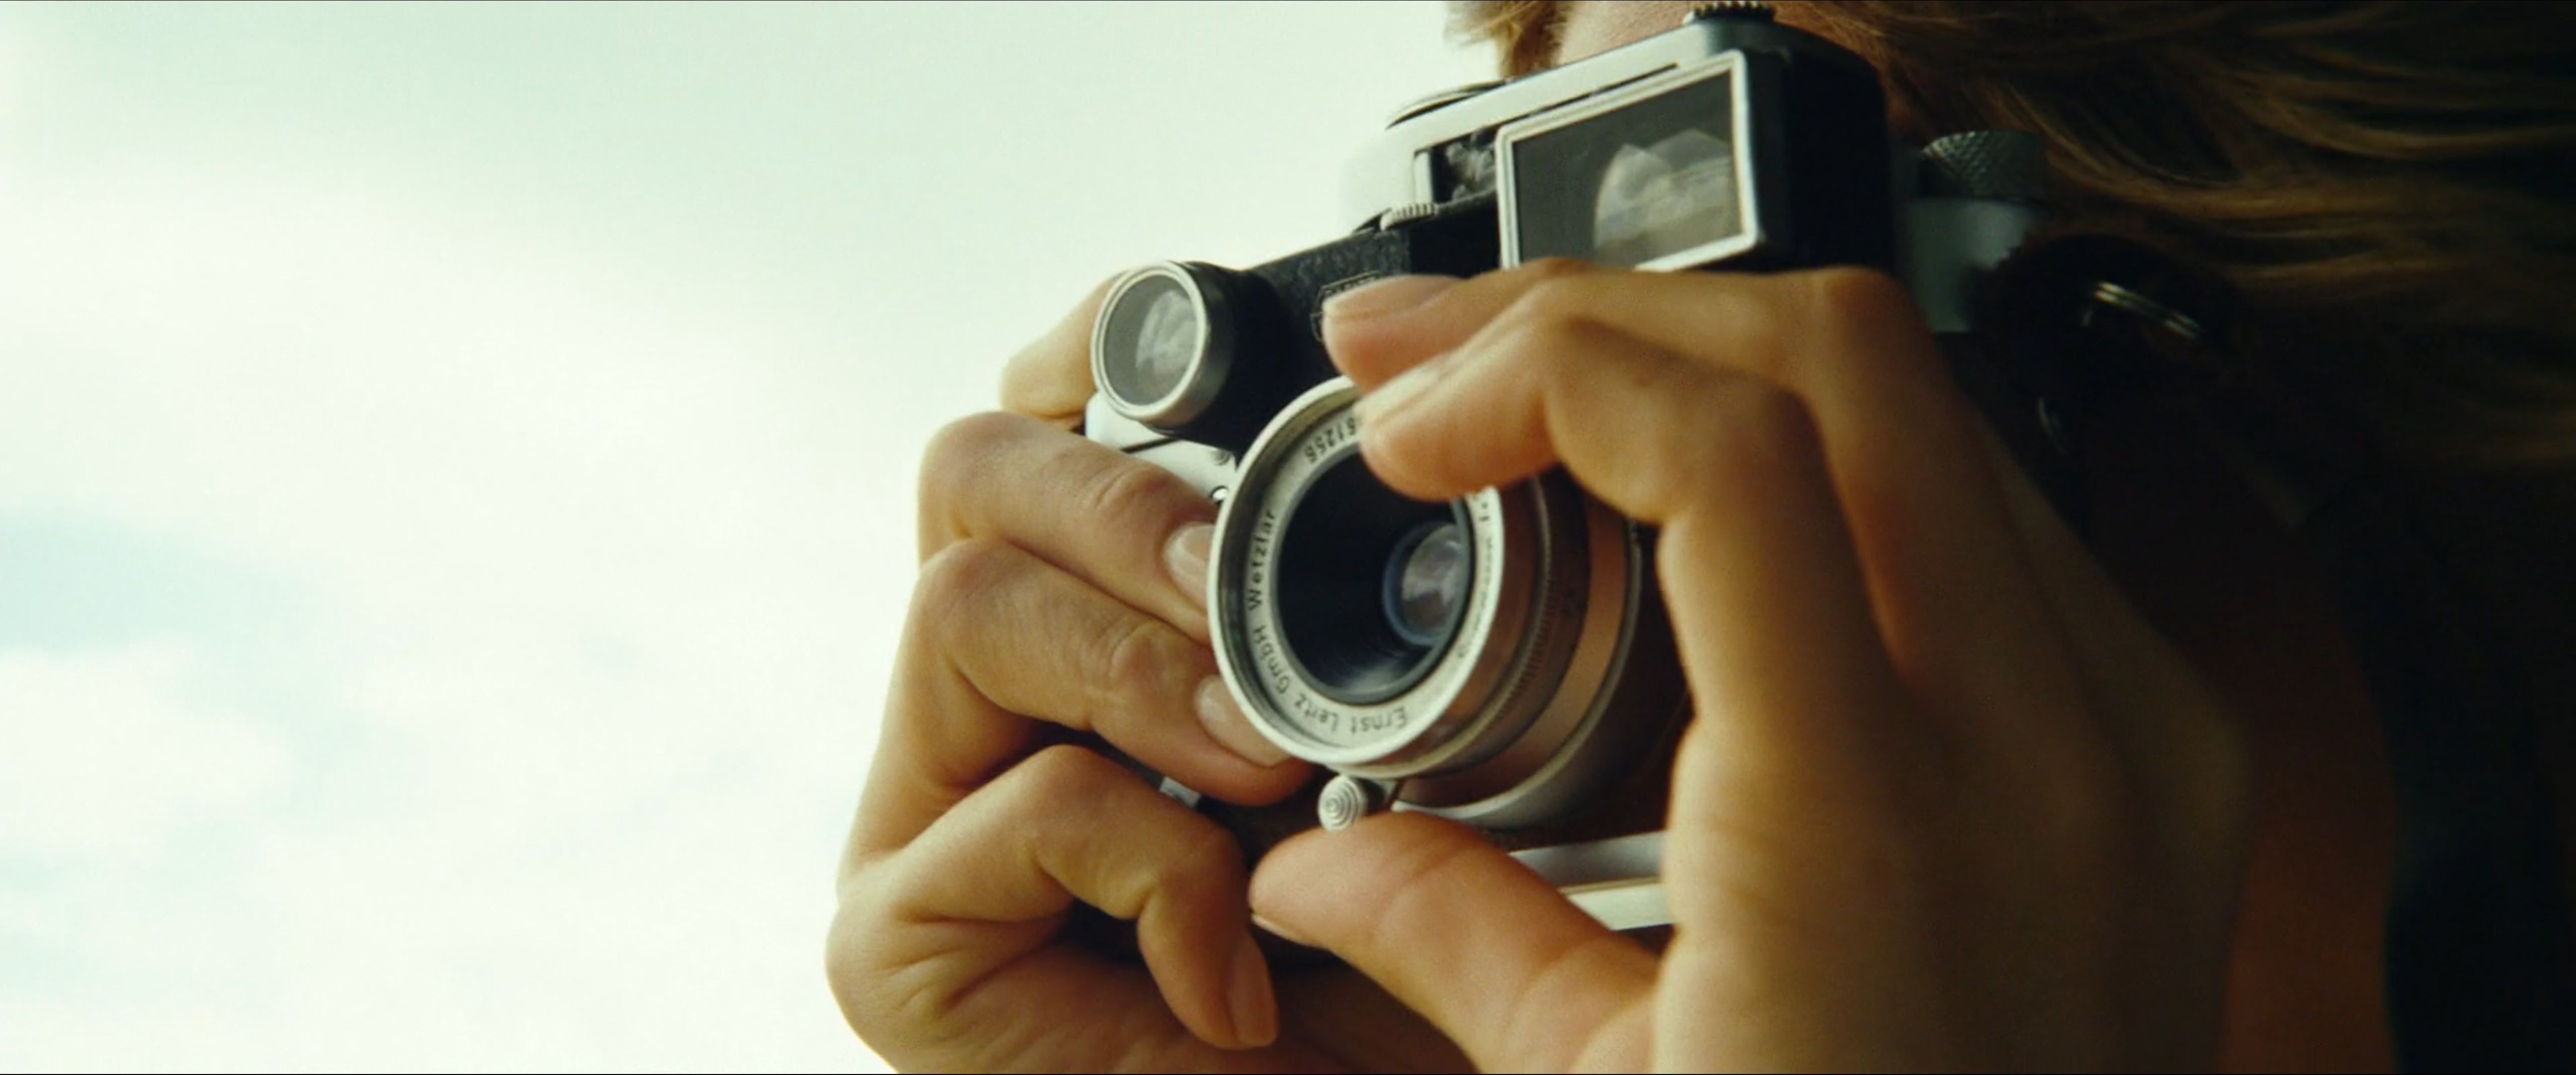 Brie Larson using an M3 with a 35 f3.5 Summaron with removable goggles and an MR meter in Kong: Skull Island (2017)